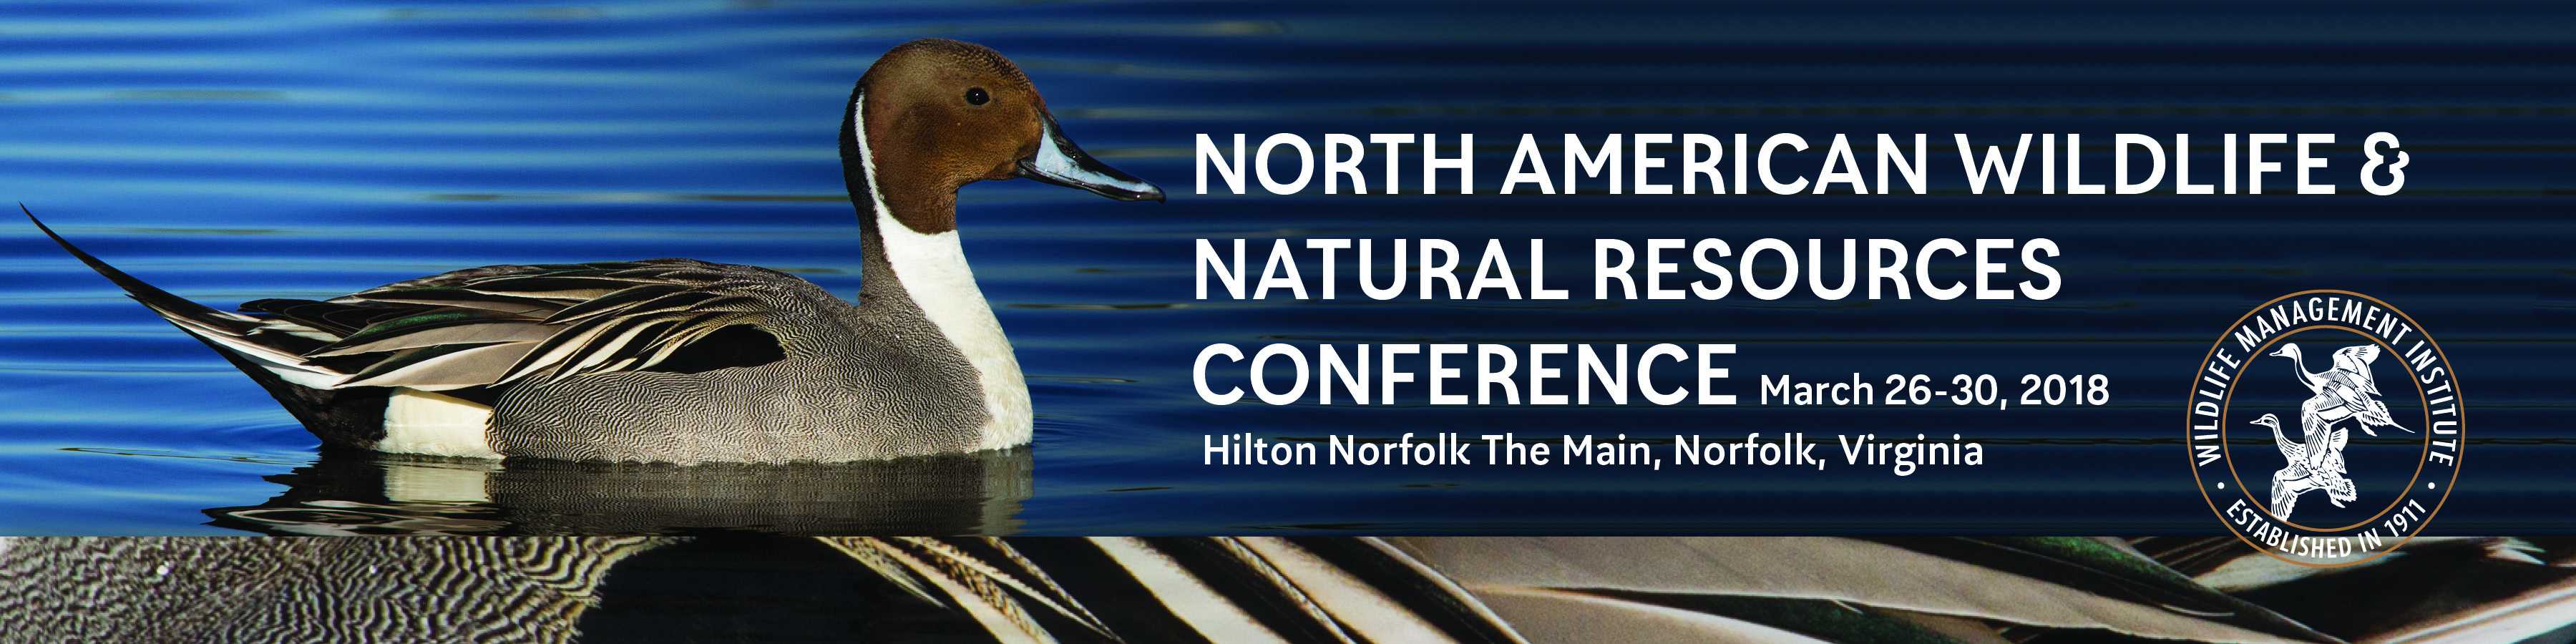 83rd North American Wildlife and Natural Resources Conference